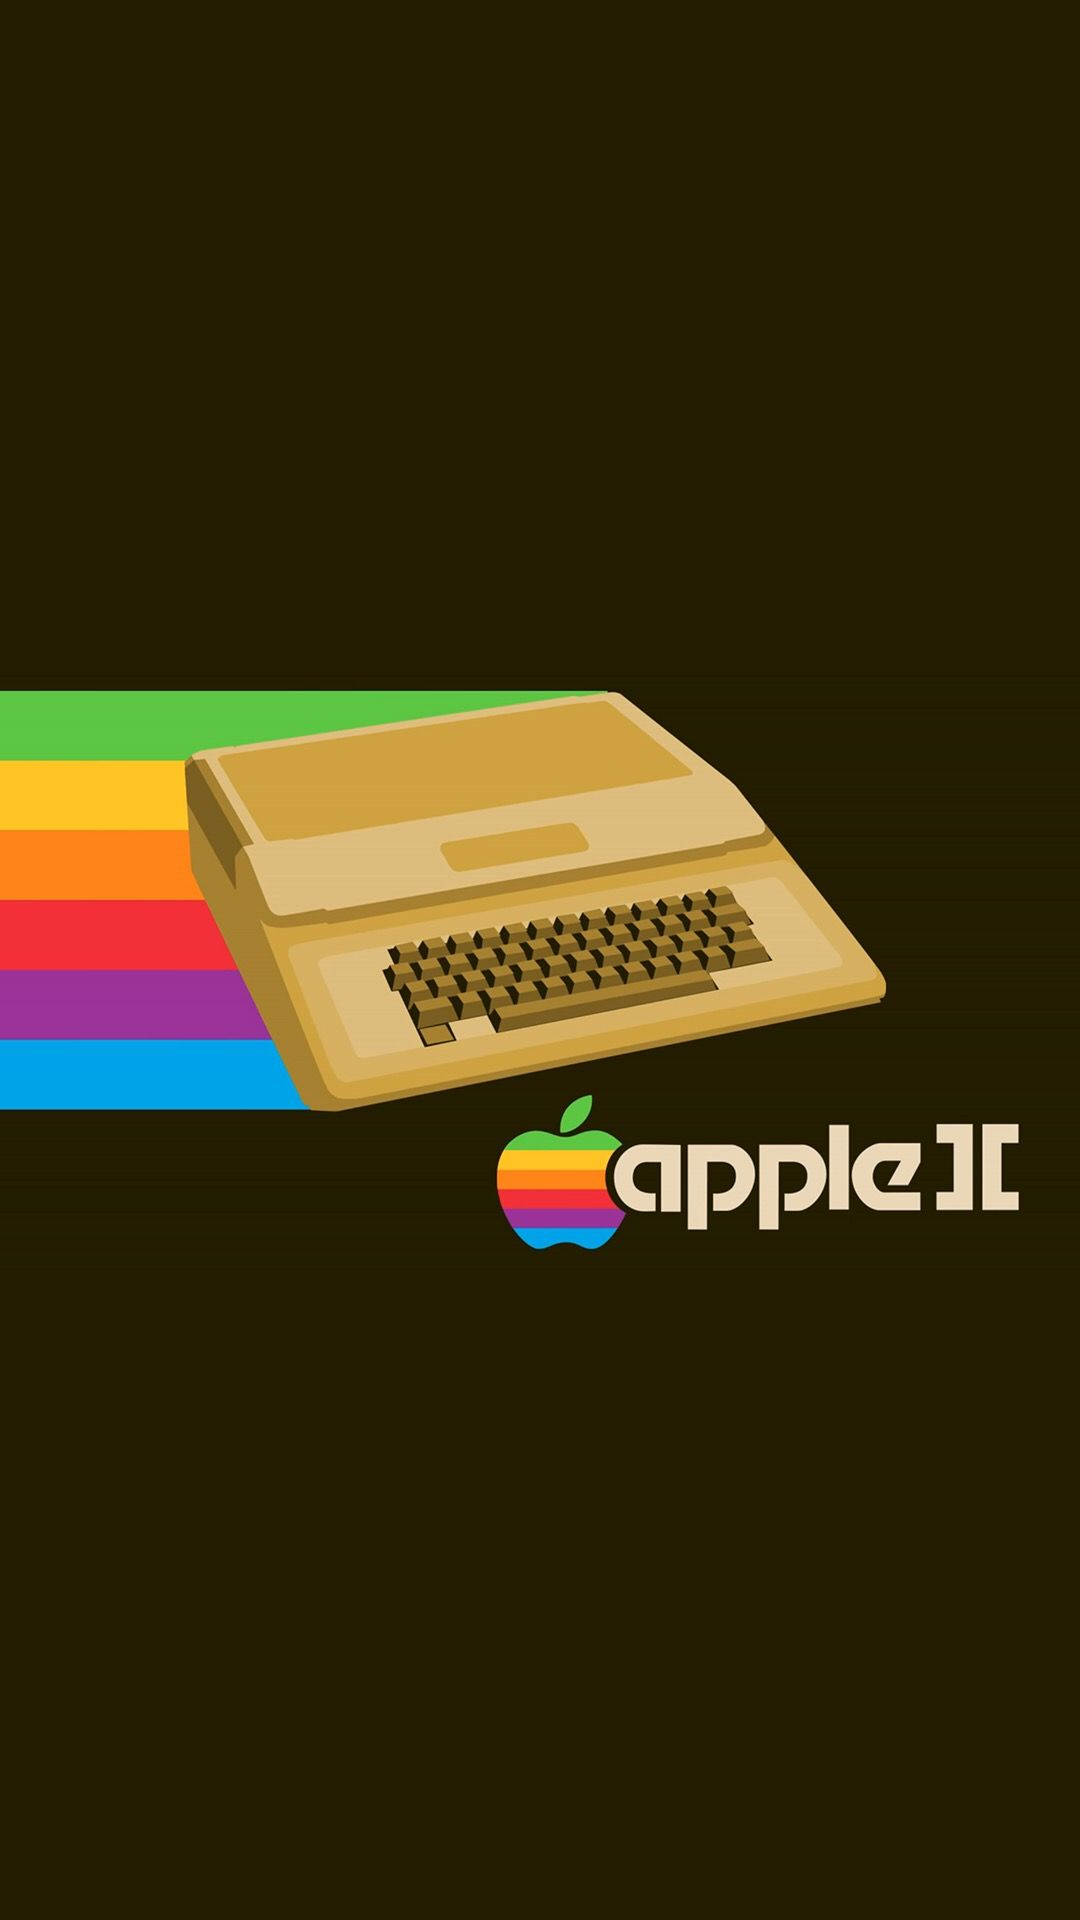 Pin By Ken Edwards On Apple Ii Apple Macintosh Apple Ii Apple Computer